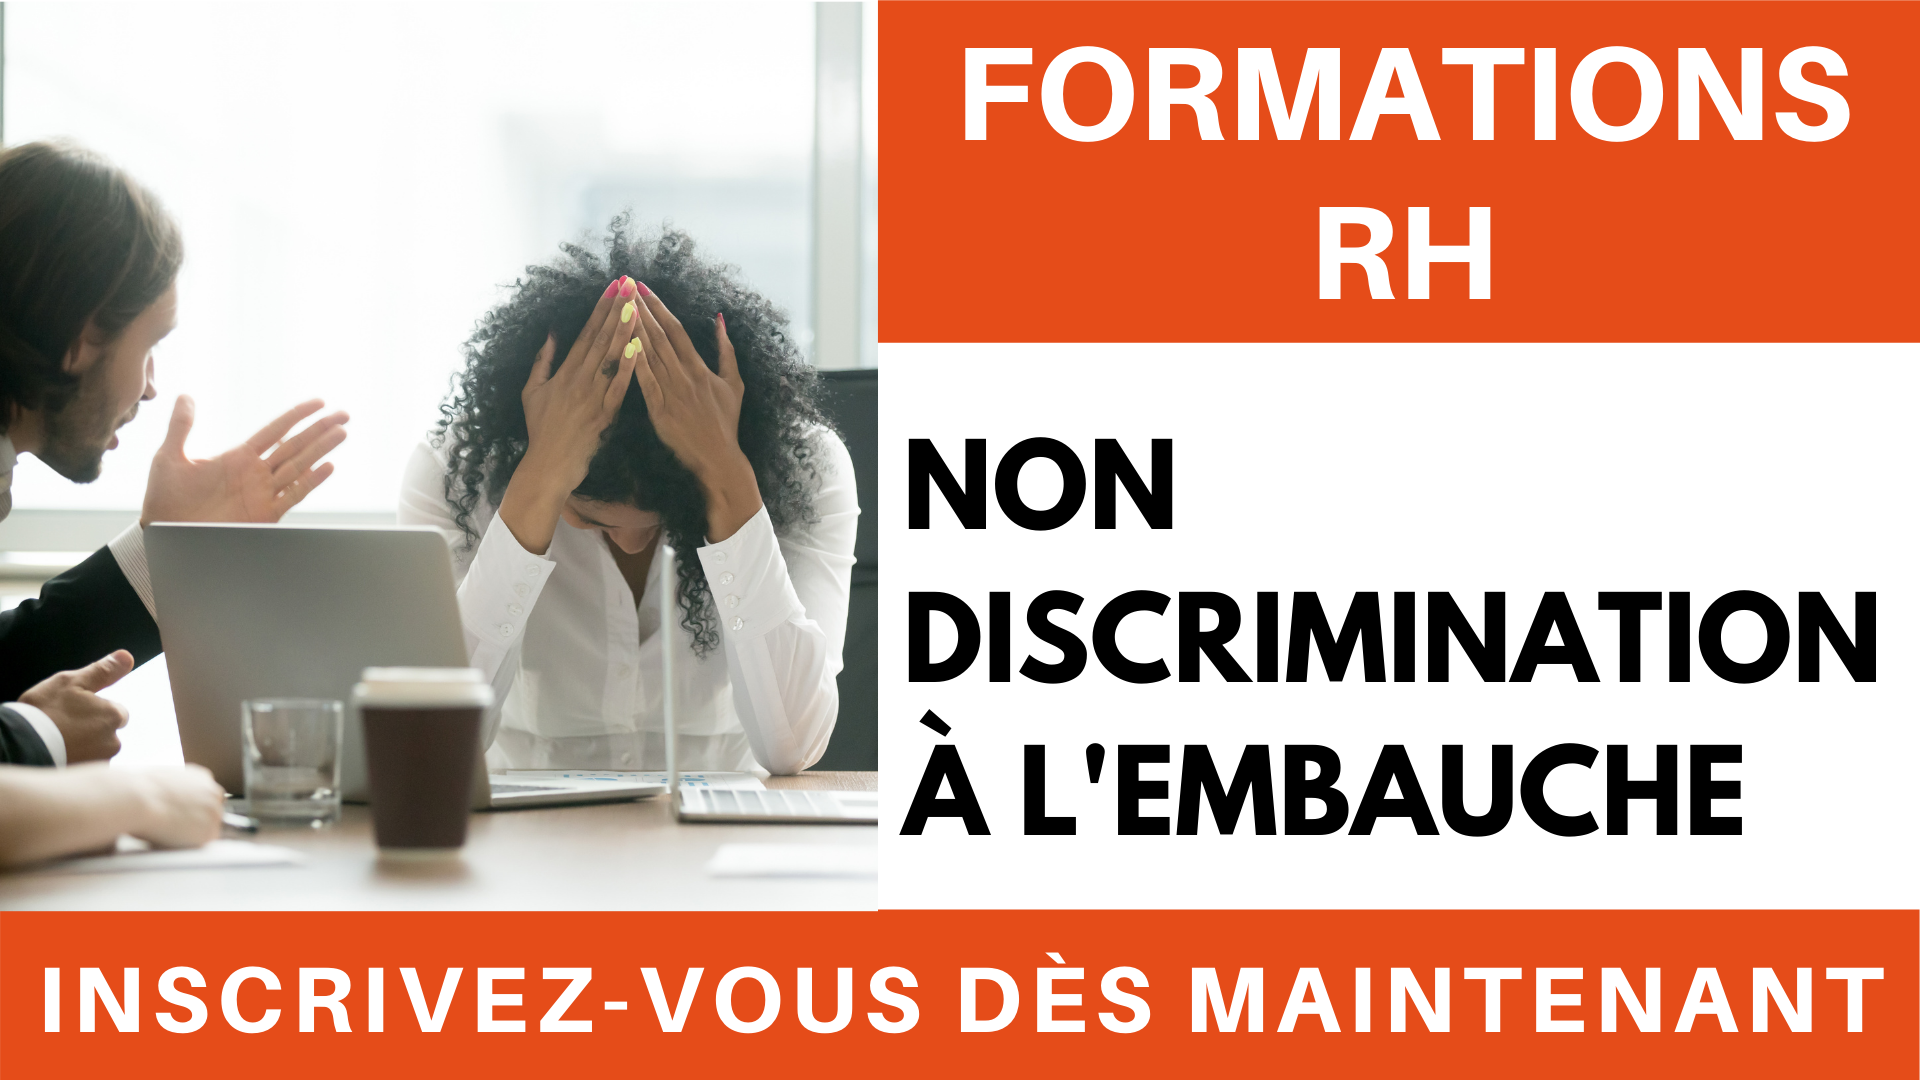 Formations RH  - Non à la discrimination à l'embauche